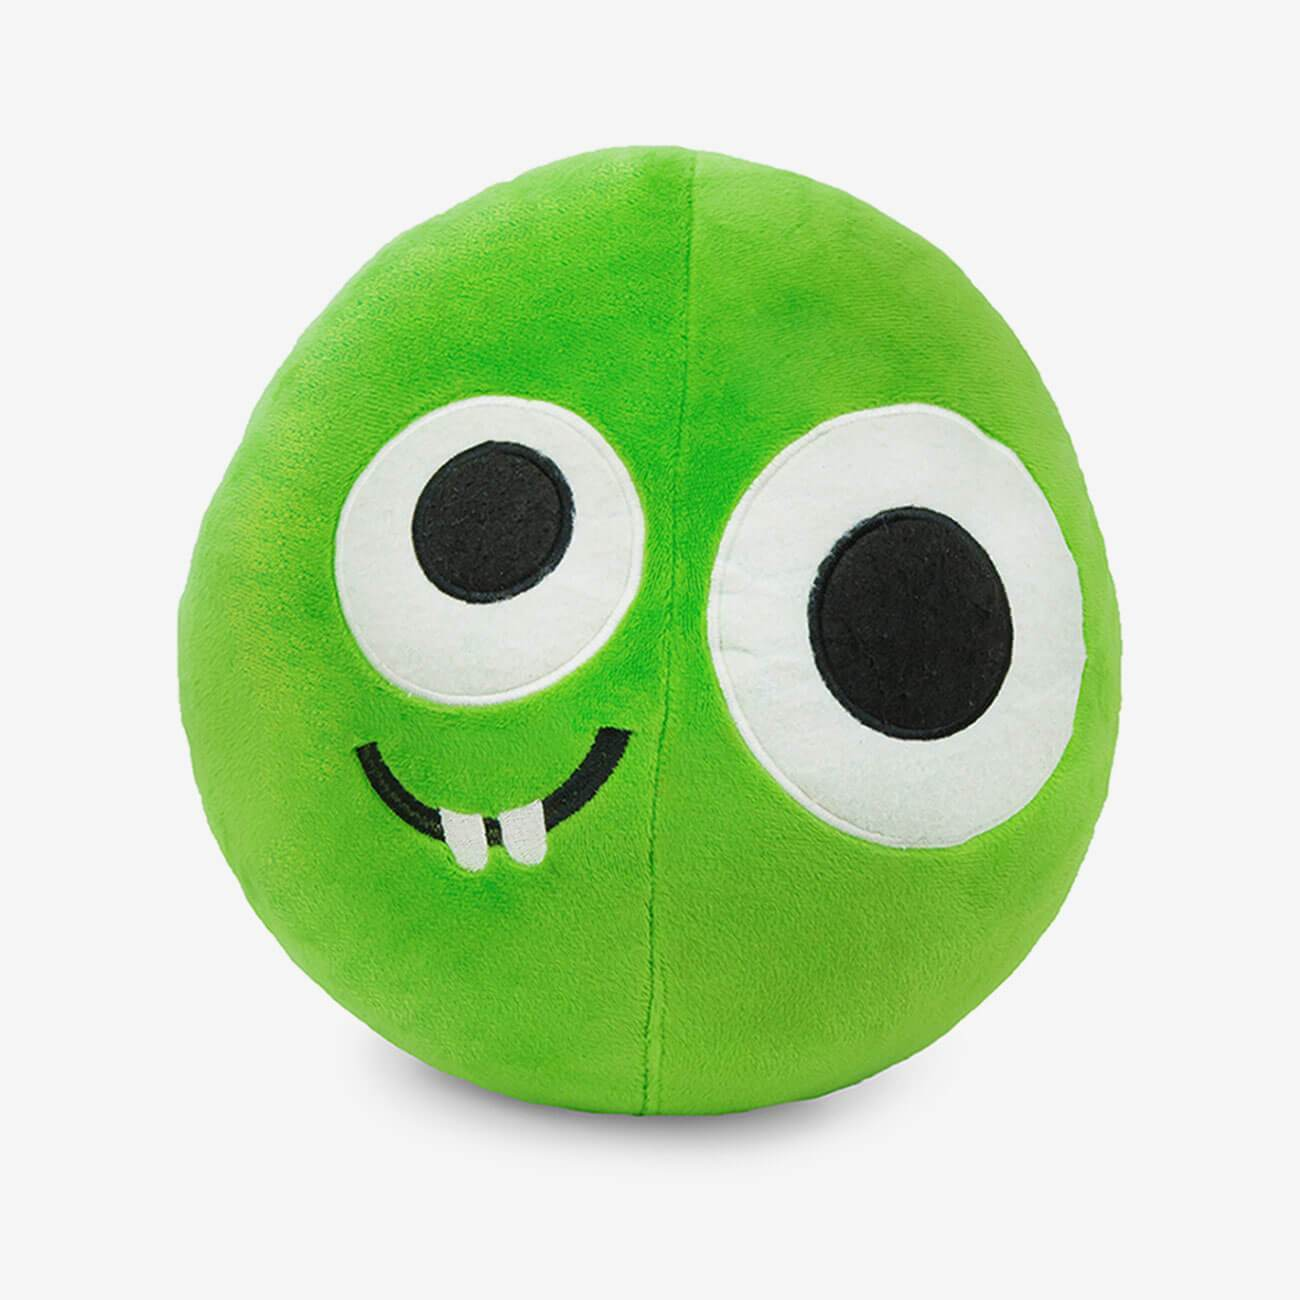 Plush Dolls - Vegan Stuffed Toy - Pea Plushie